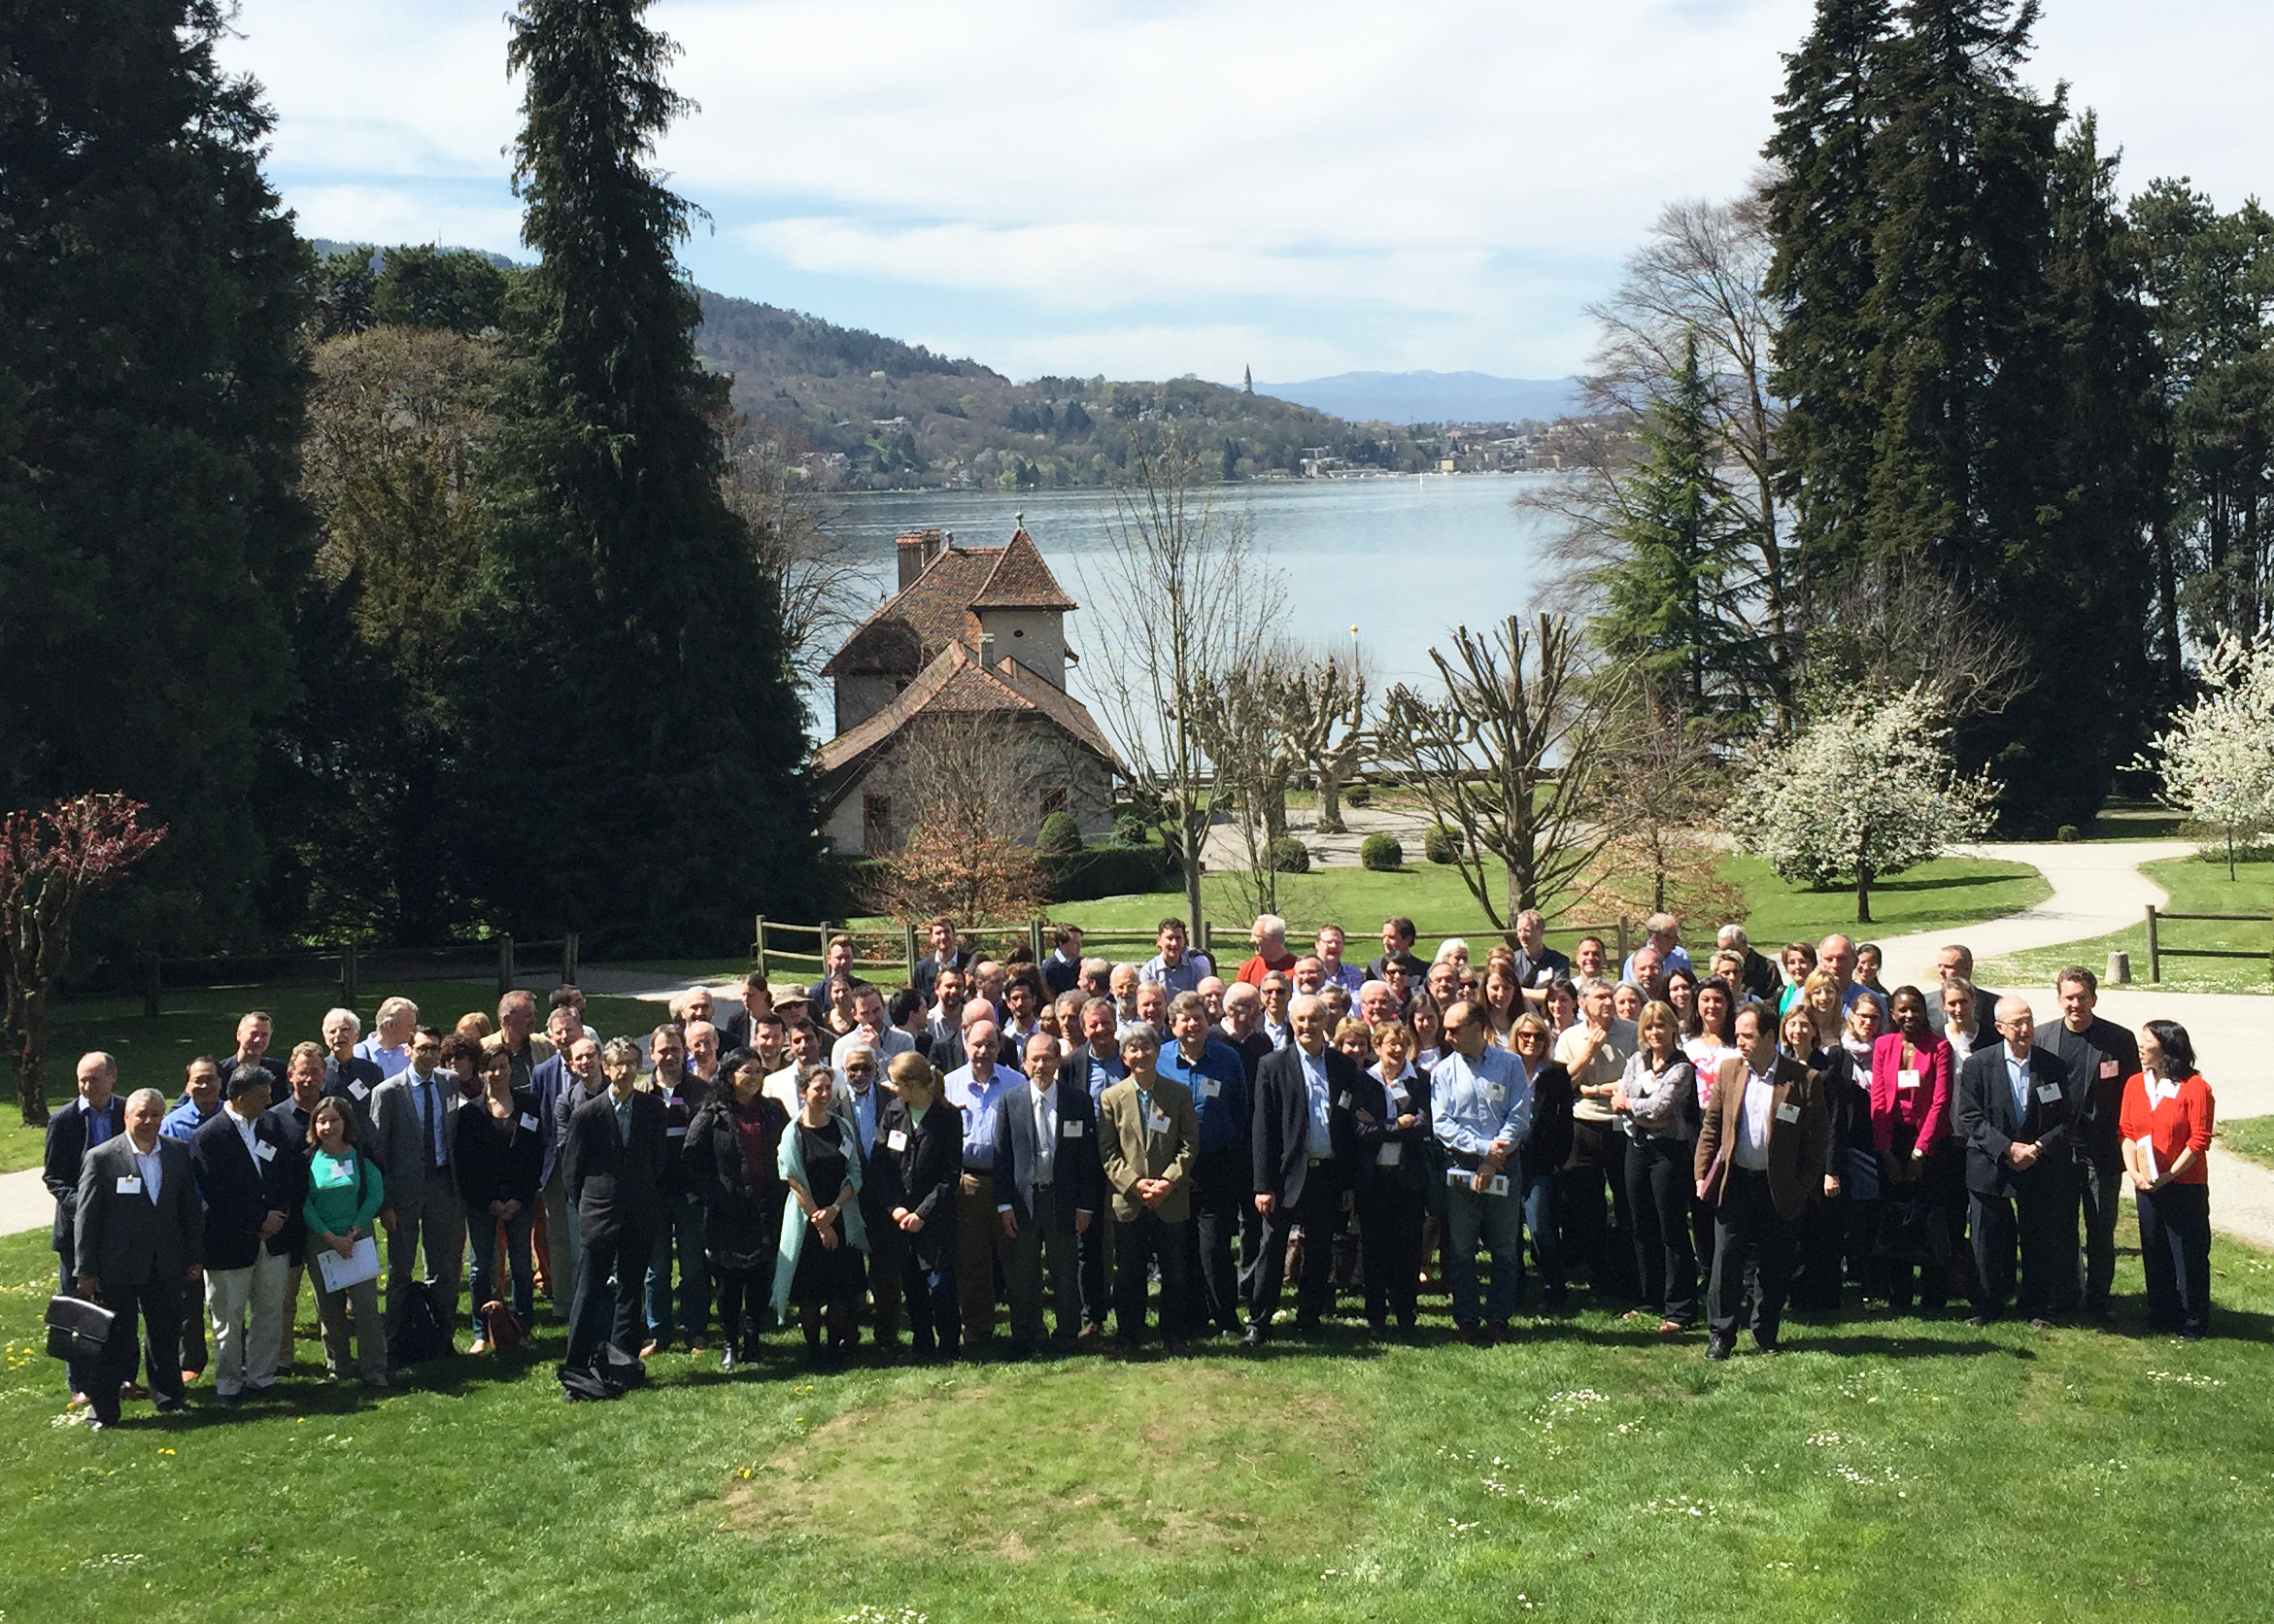 2015 HKS Meeting Participants in Annecy, France.